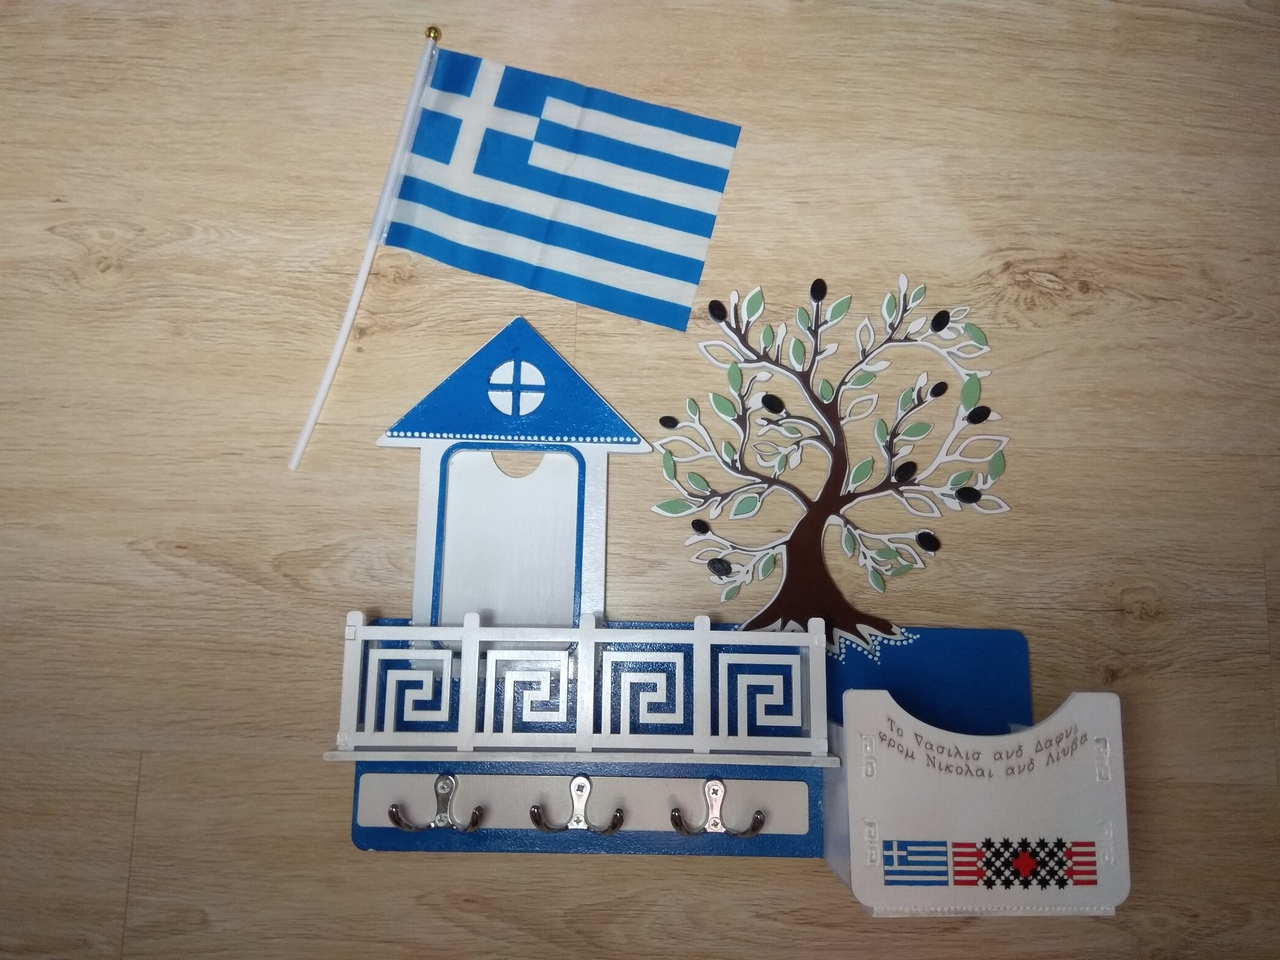 Laser Cut Hanger With Flag And Tree Free CDR Vectors Art